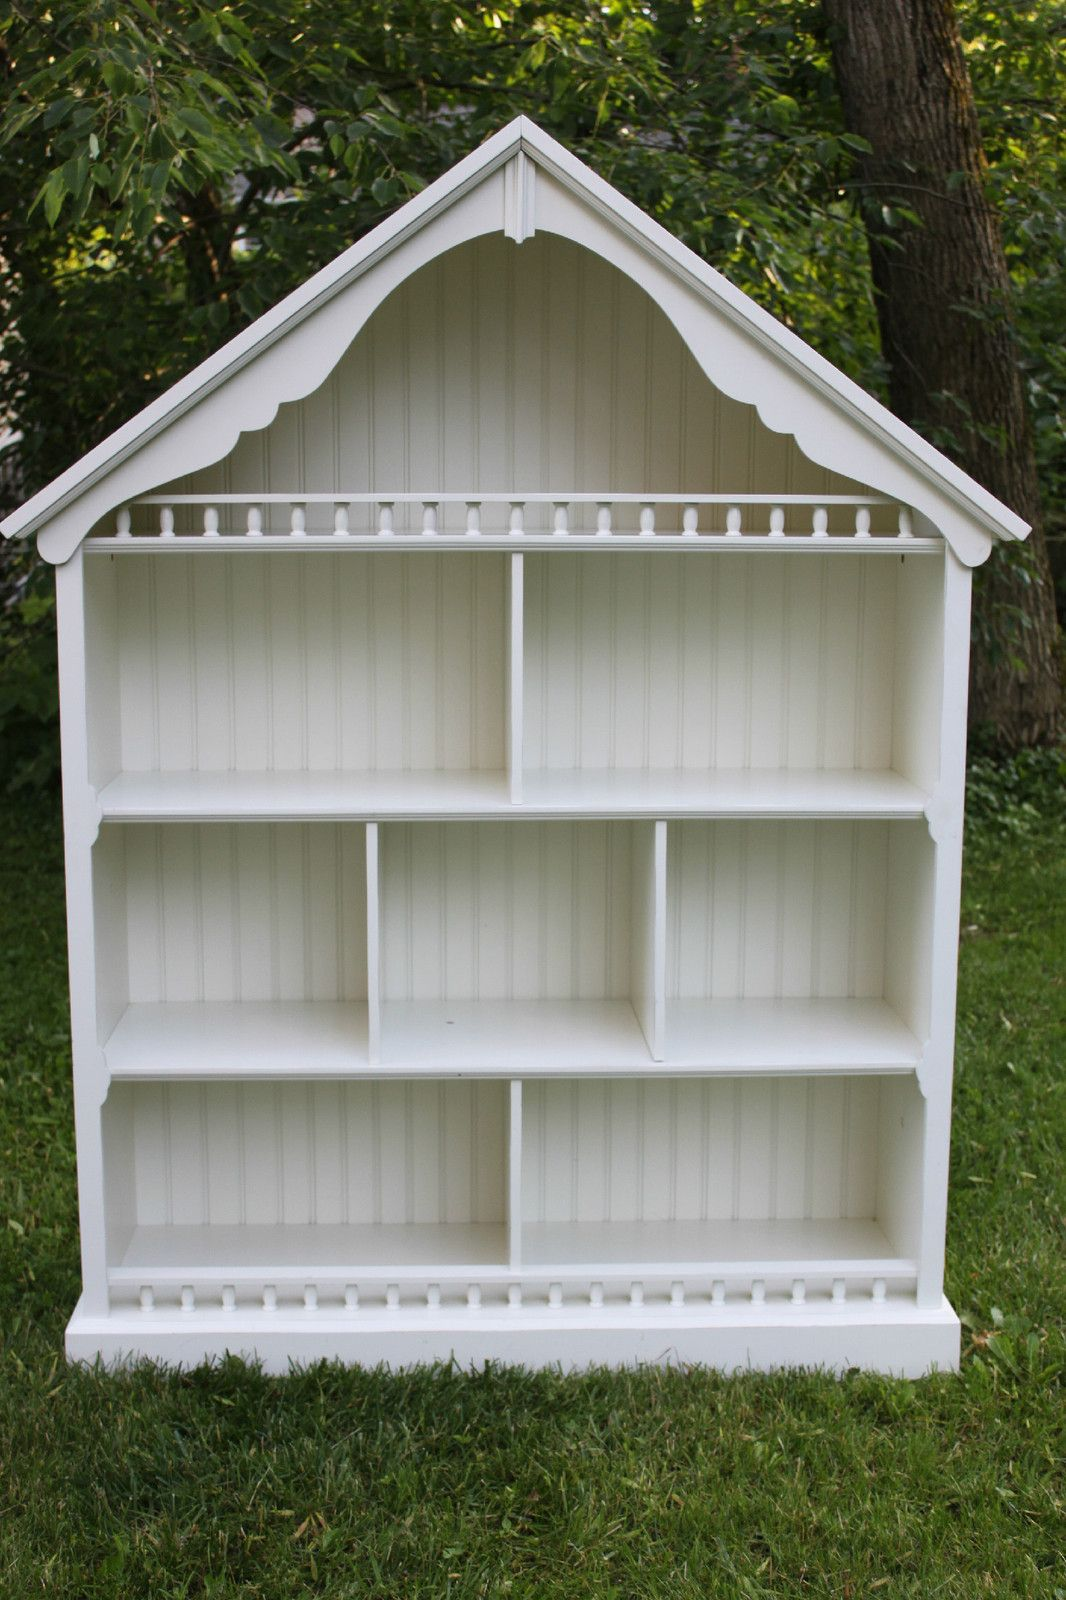 Pottery Barn Kids Dollhouse Bookcase Ebay Top Toys For 2016 In